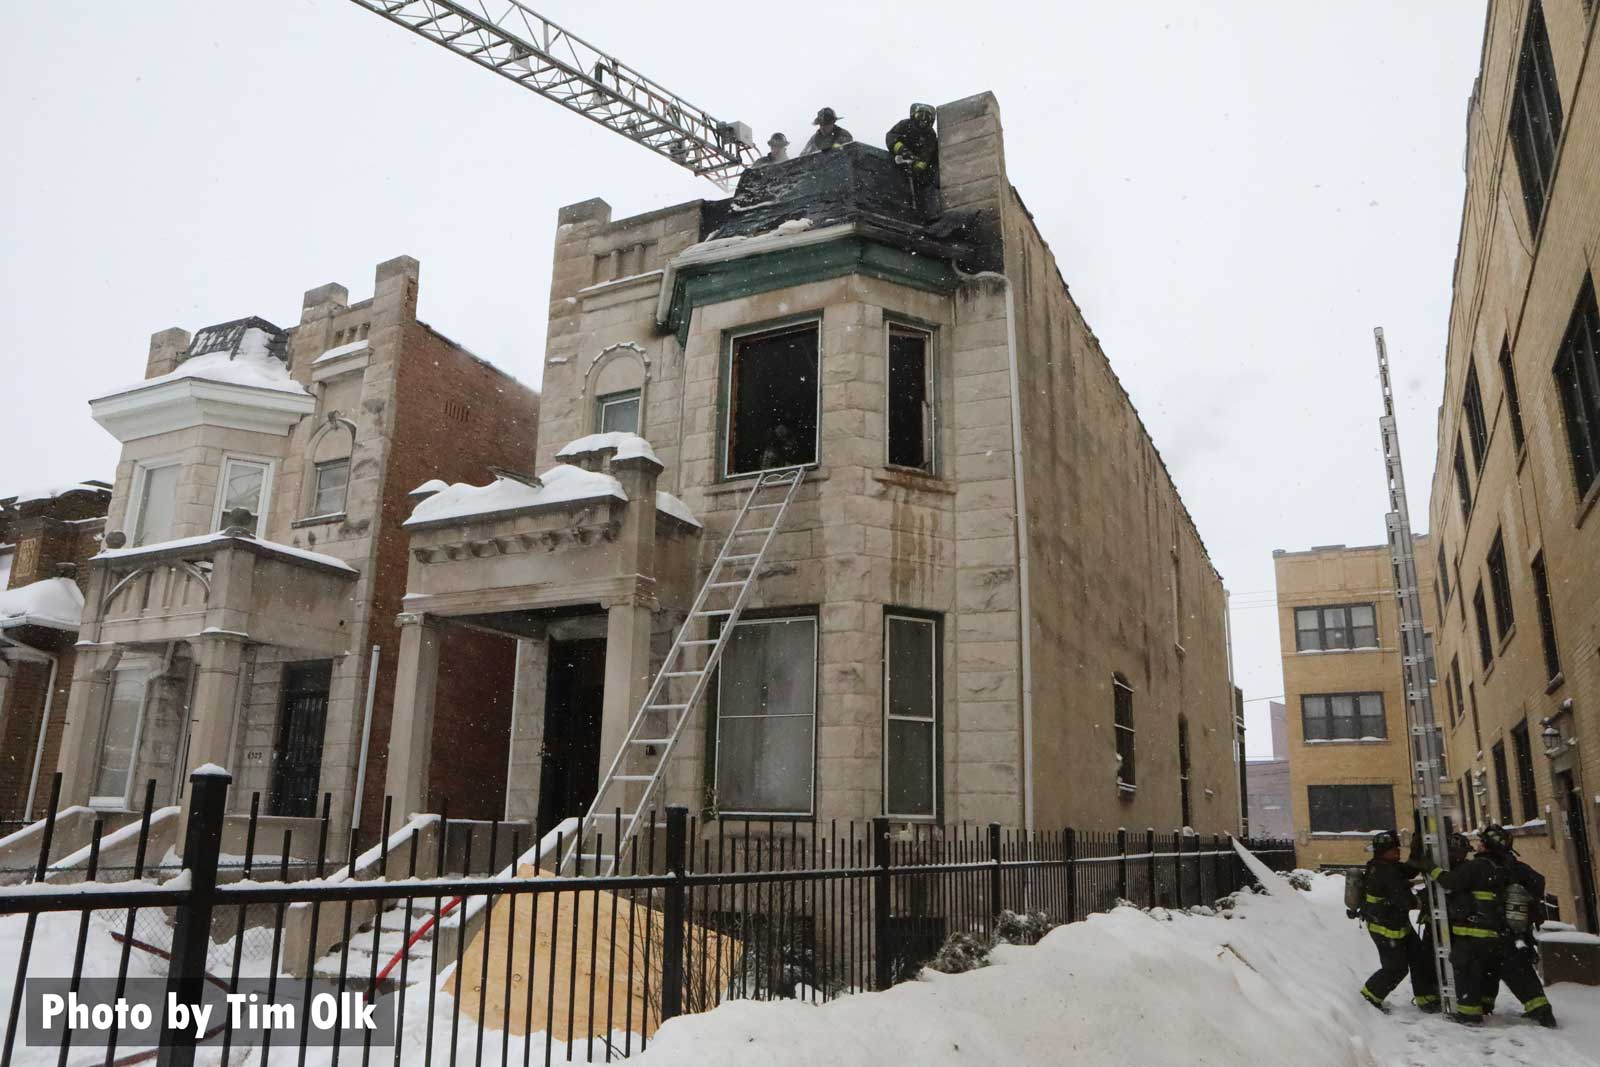 Chicago firefighters laddering a building